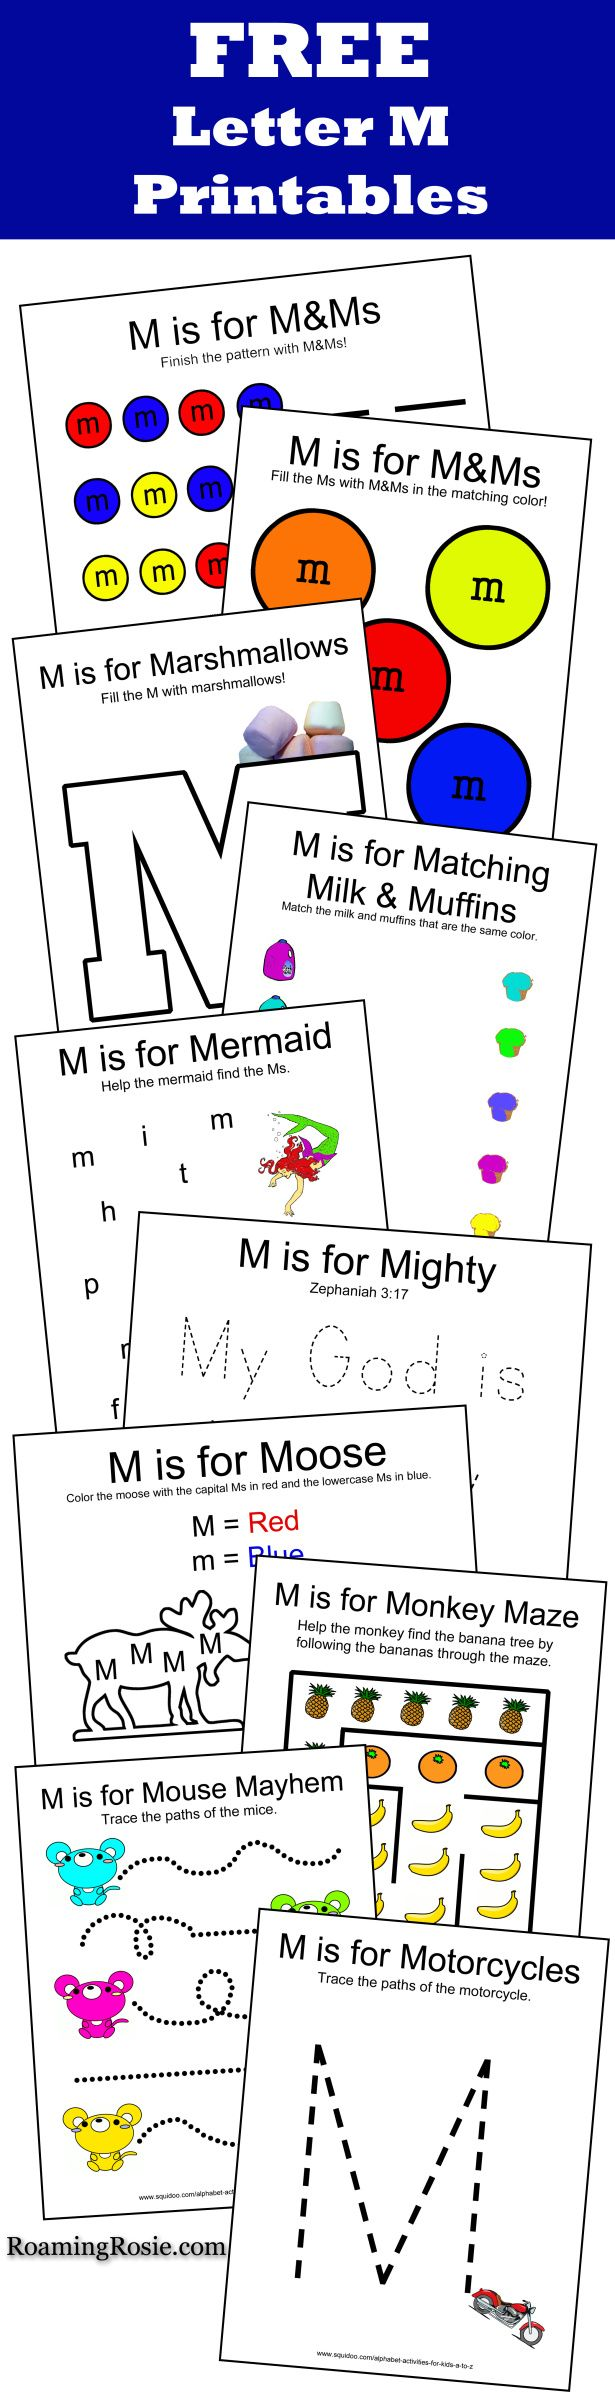 17 best images about m is for alphabet on pinterest preschool alphabet kindergarten. Black Bedroom Furniture Sets. Home Design Ideas